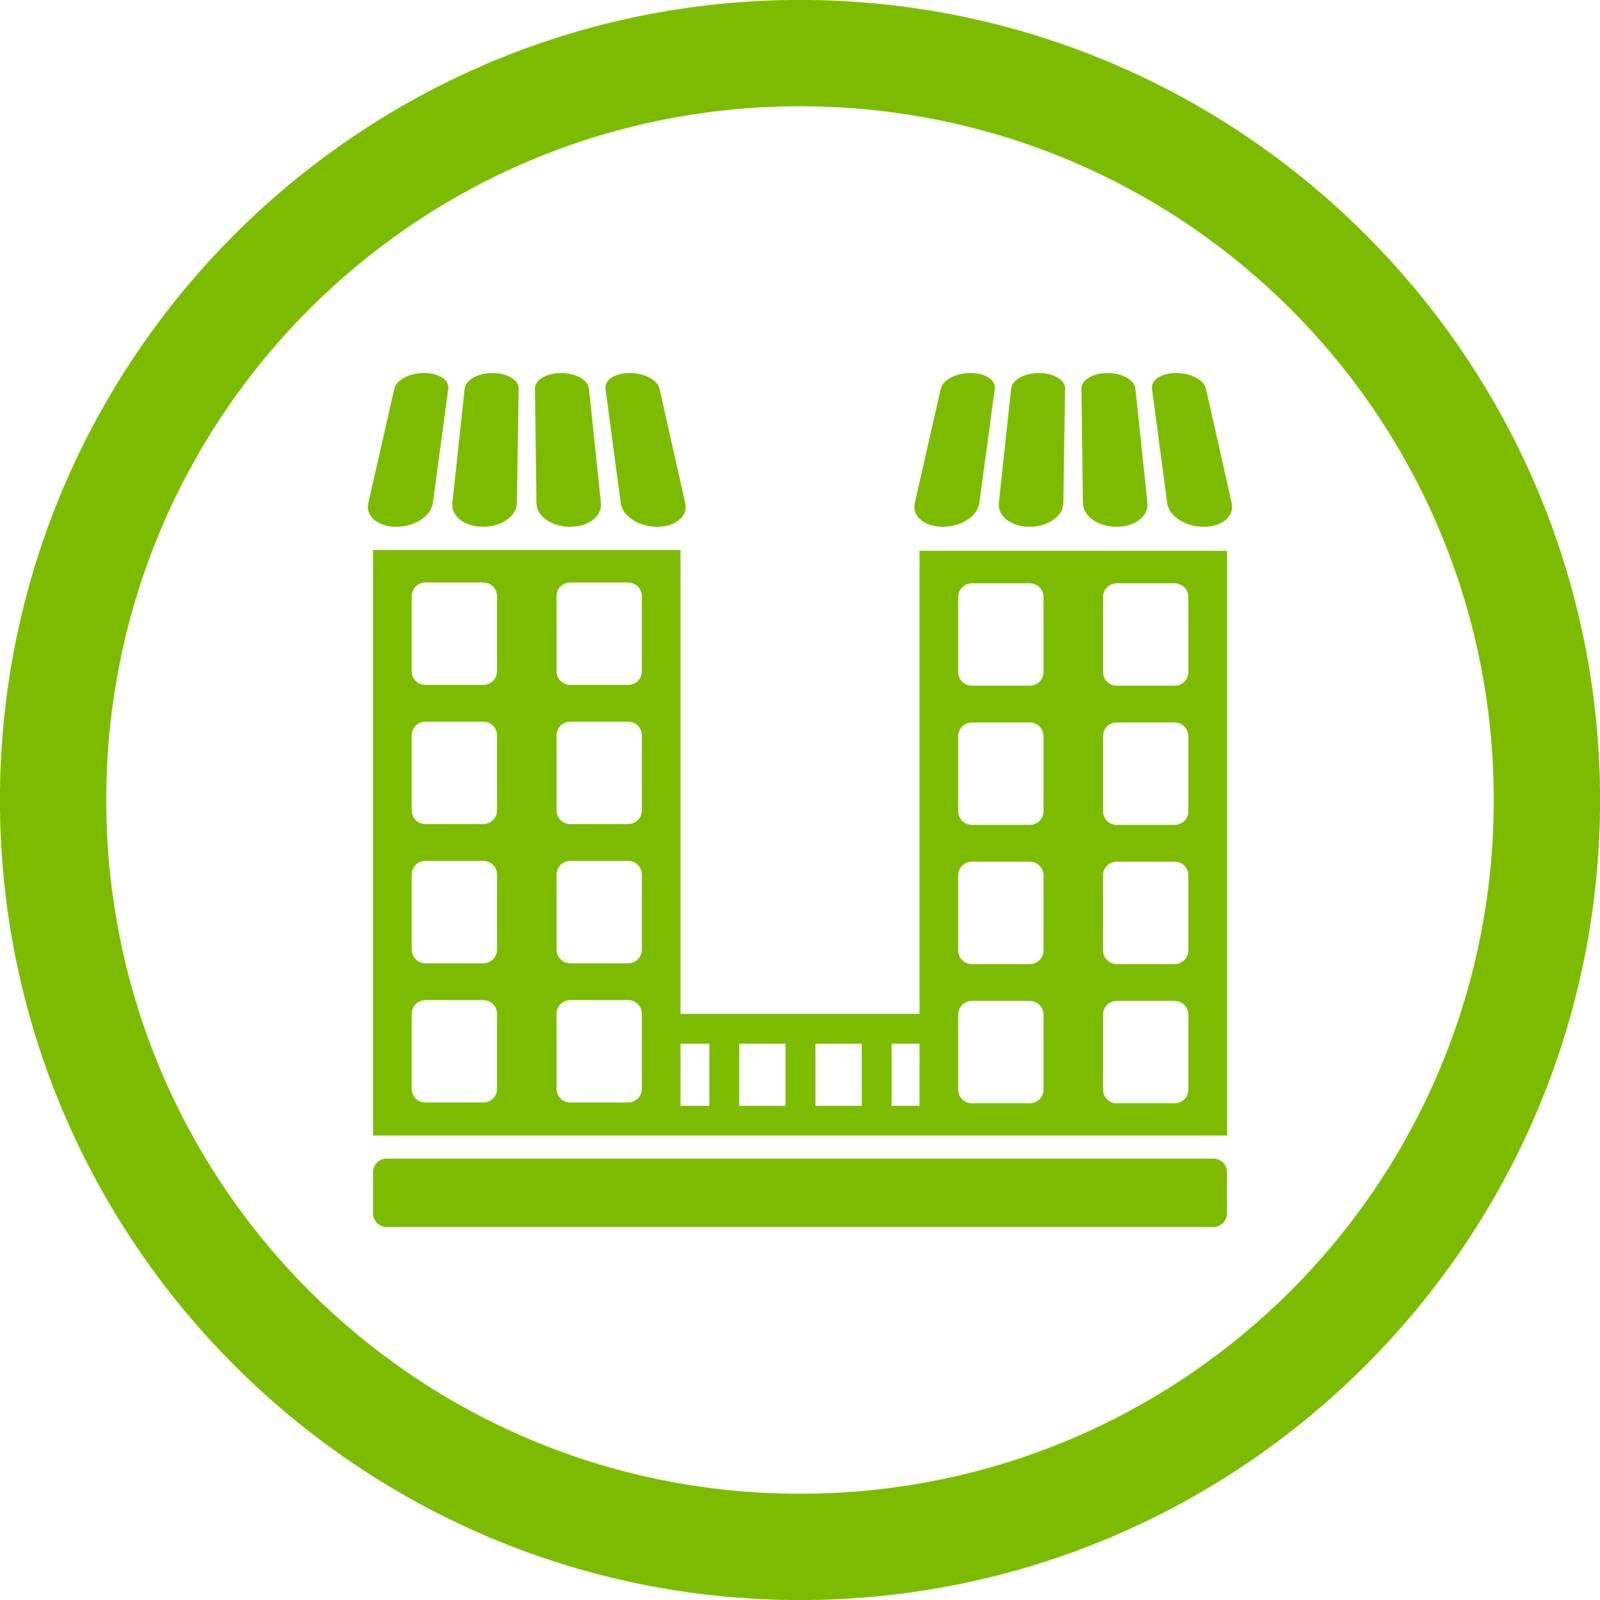 Company vector icon. This flat rounded symbol uses eco green color and isolated on a white background.